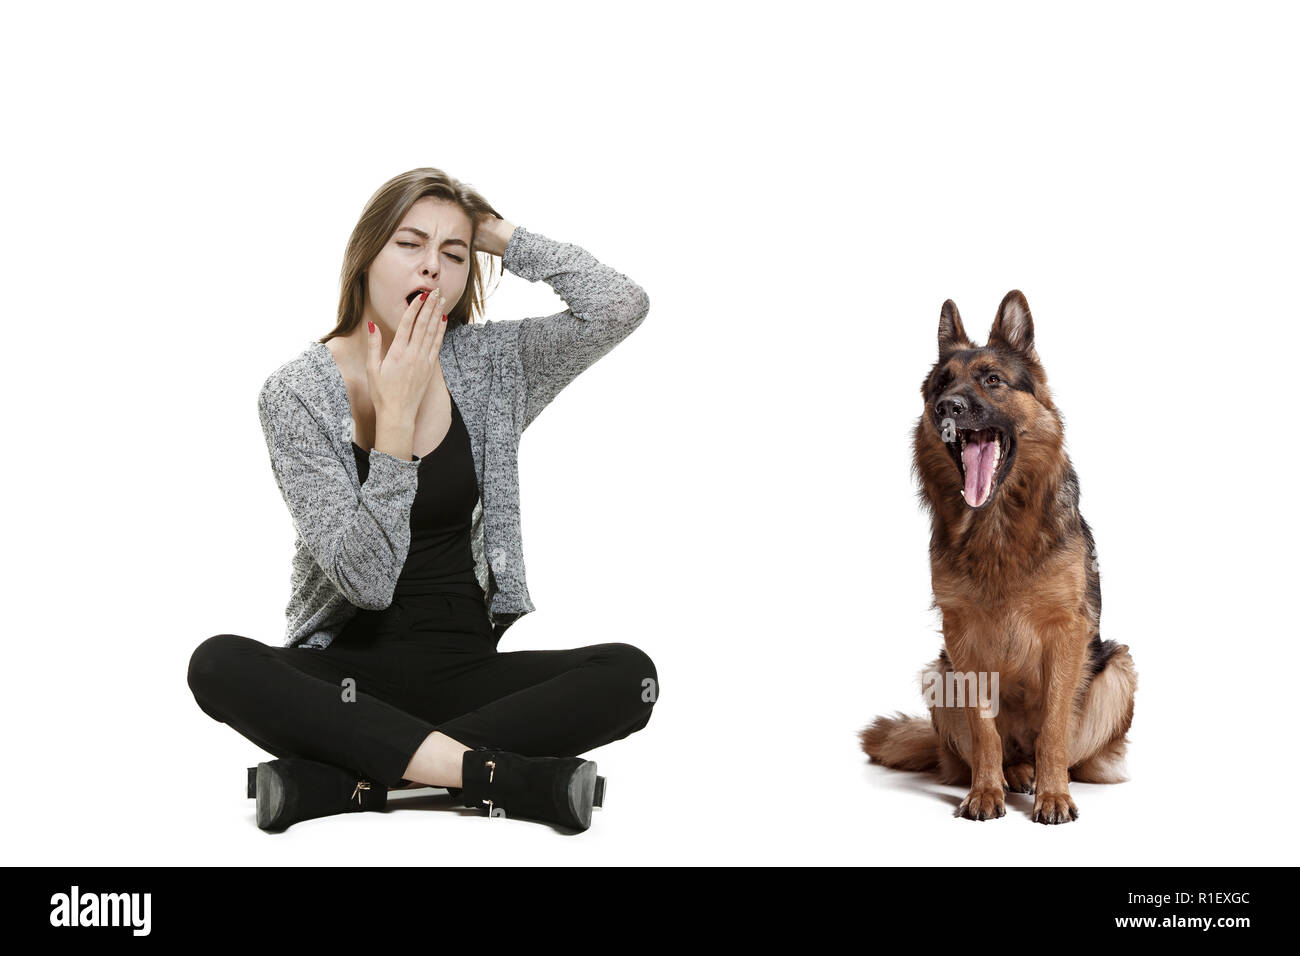 The yawning bored woman and her dog over white background. Shetland Sheepdog sitting in front of a white studio background. The concept of humans and animals same emotions - Stock Image